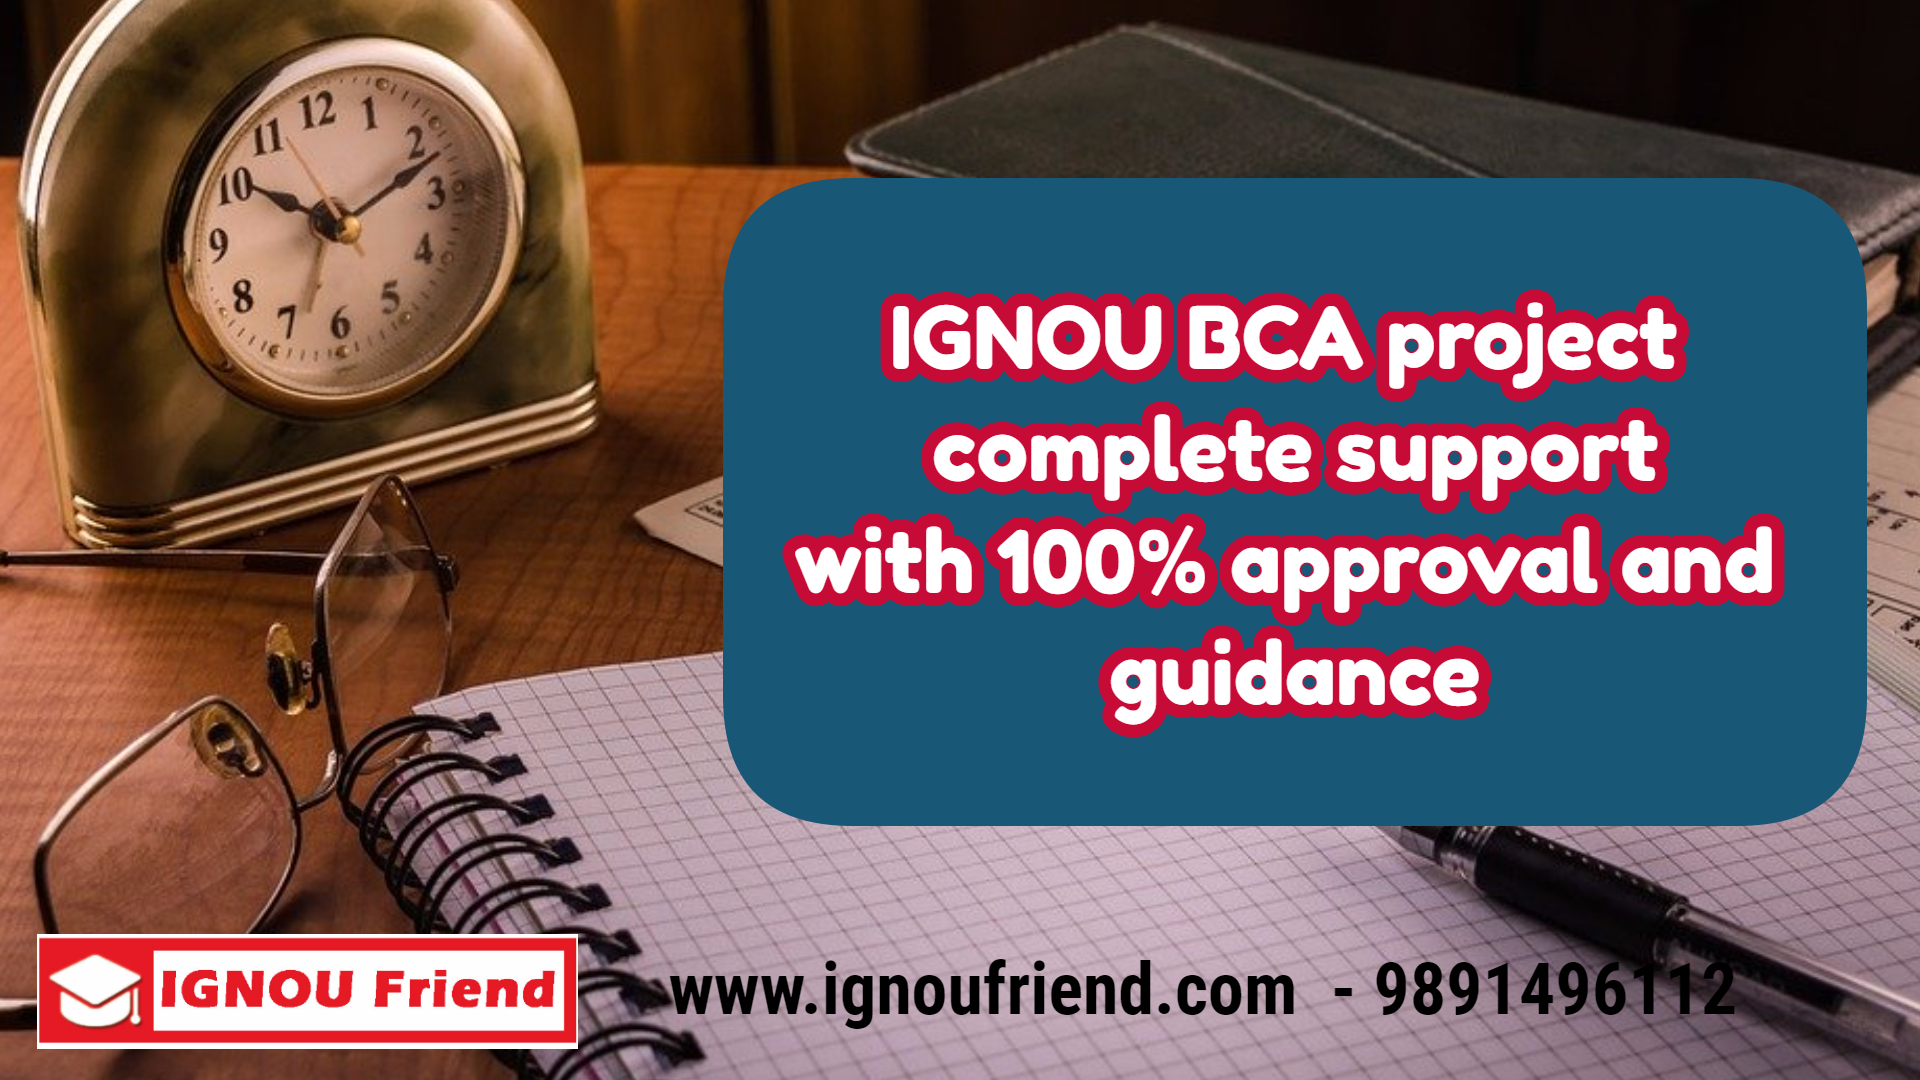 IGNOU BCA PROJECT COMPLETE SUPPORT - BCSP064